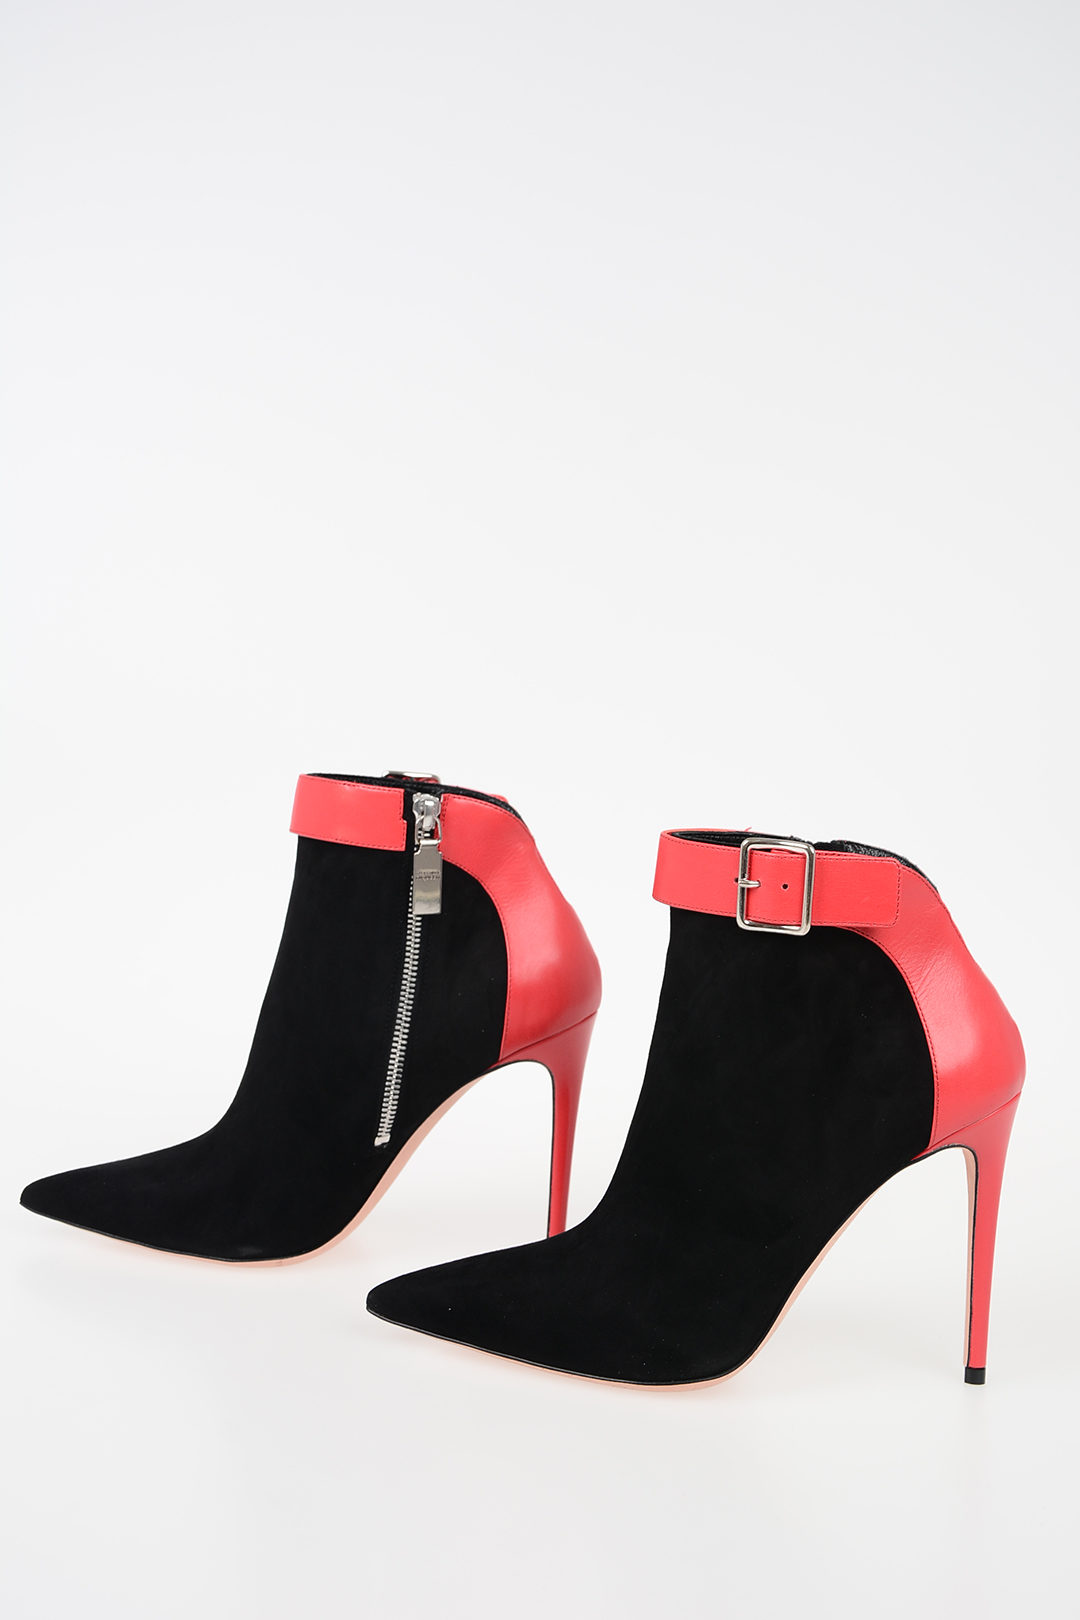 meet available hot sale 11cm Black Red Leather Ankle Boots